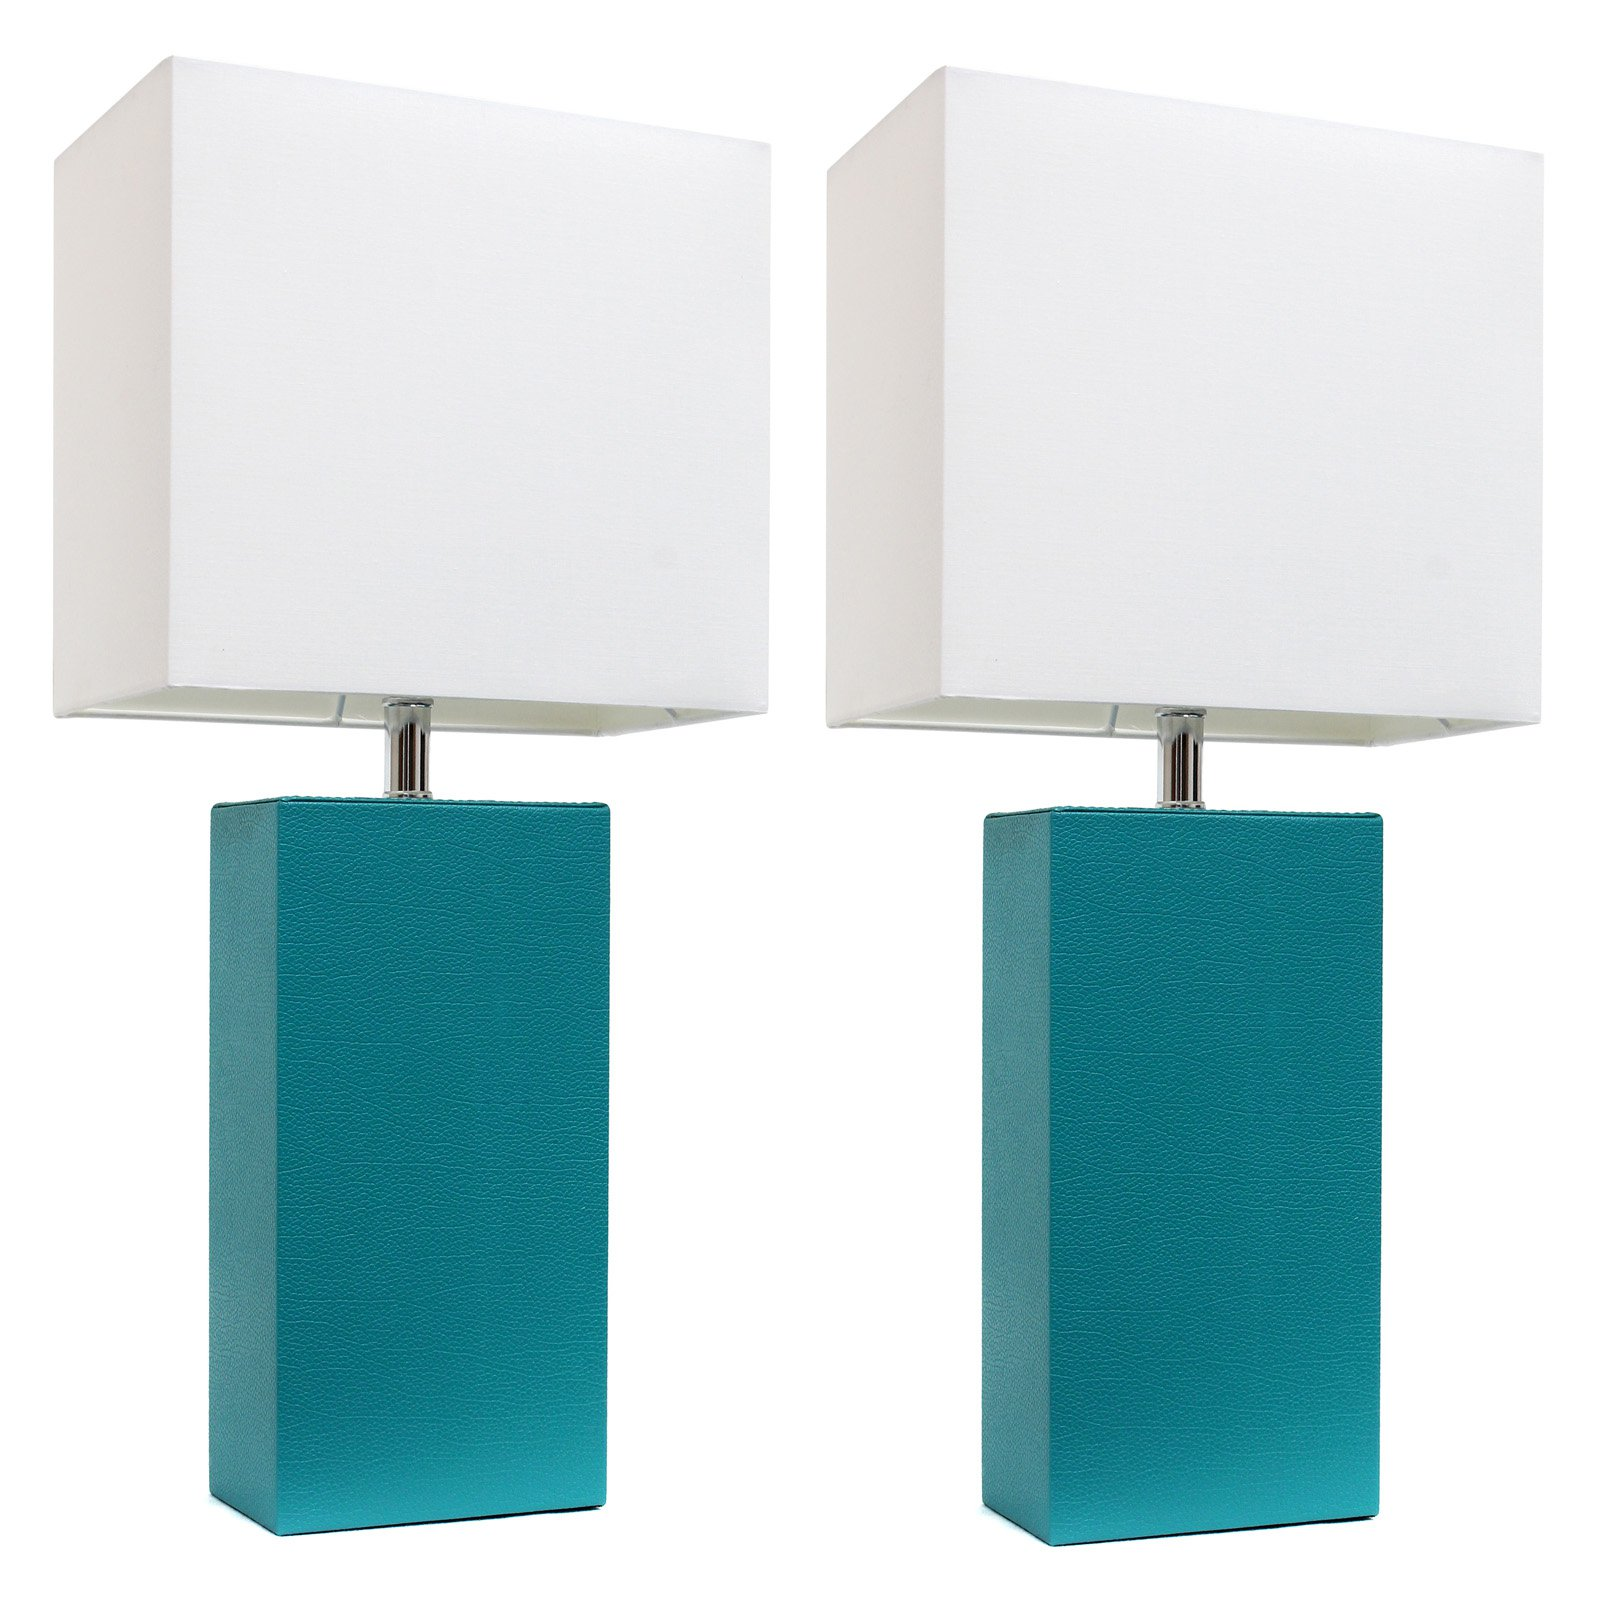 Elegant Designs 2 Pack Modern Leather Table Lamps with White Fabric Shades by All the Rages Inc